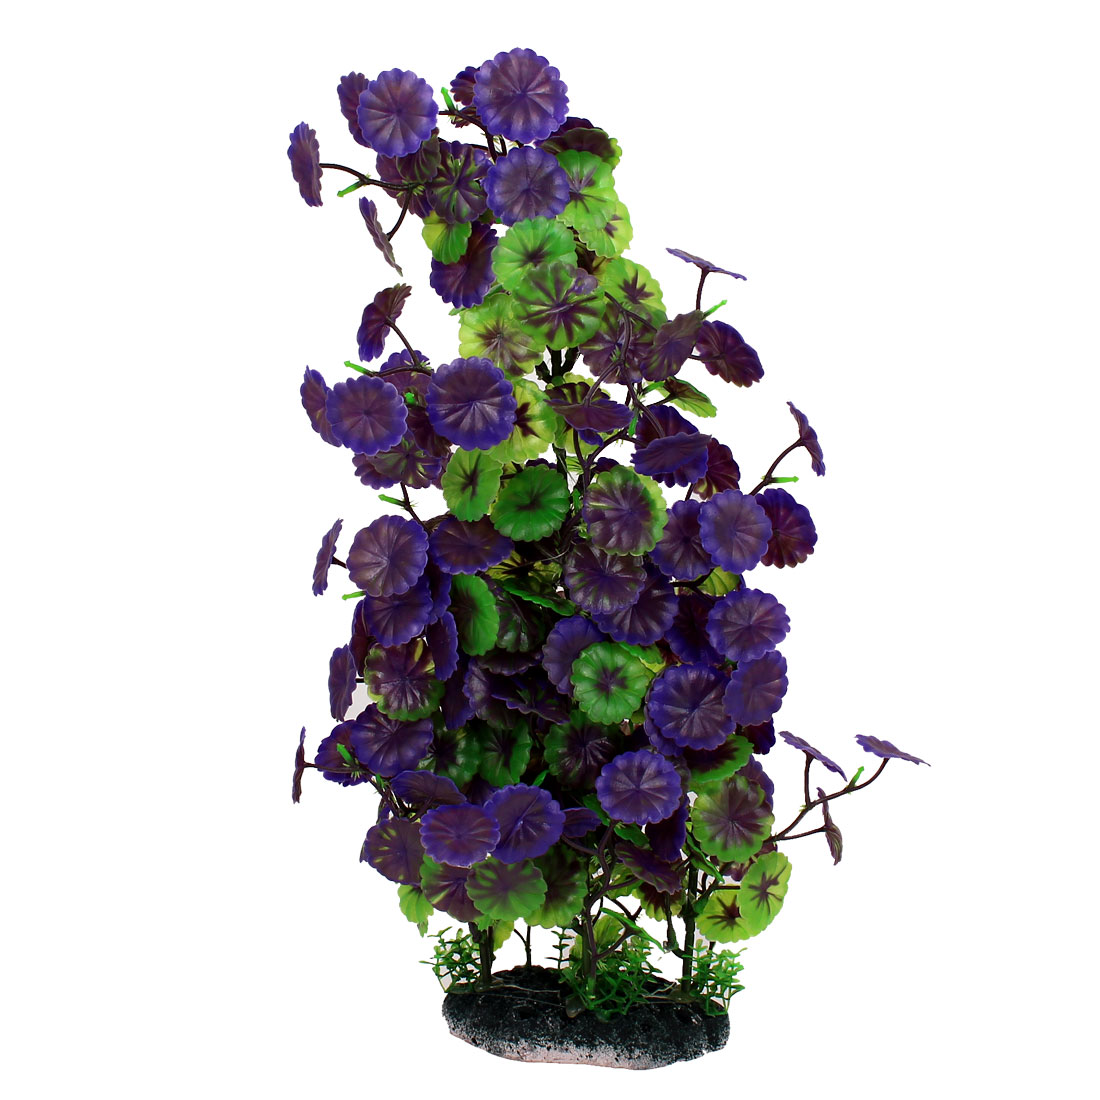 Aquarium Fish Tank Plastic Simulation Underwater Plant Decoration Green Purple 40cm High